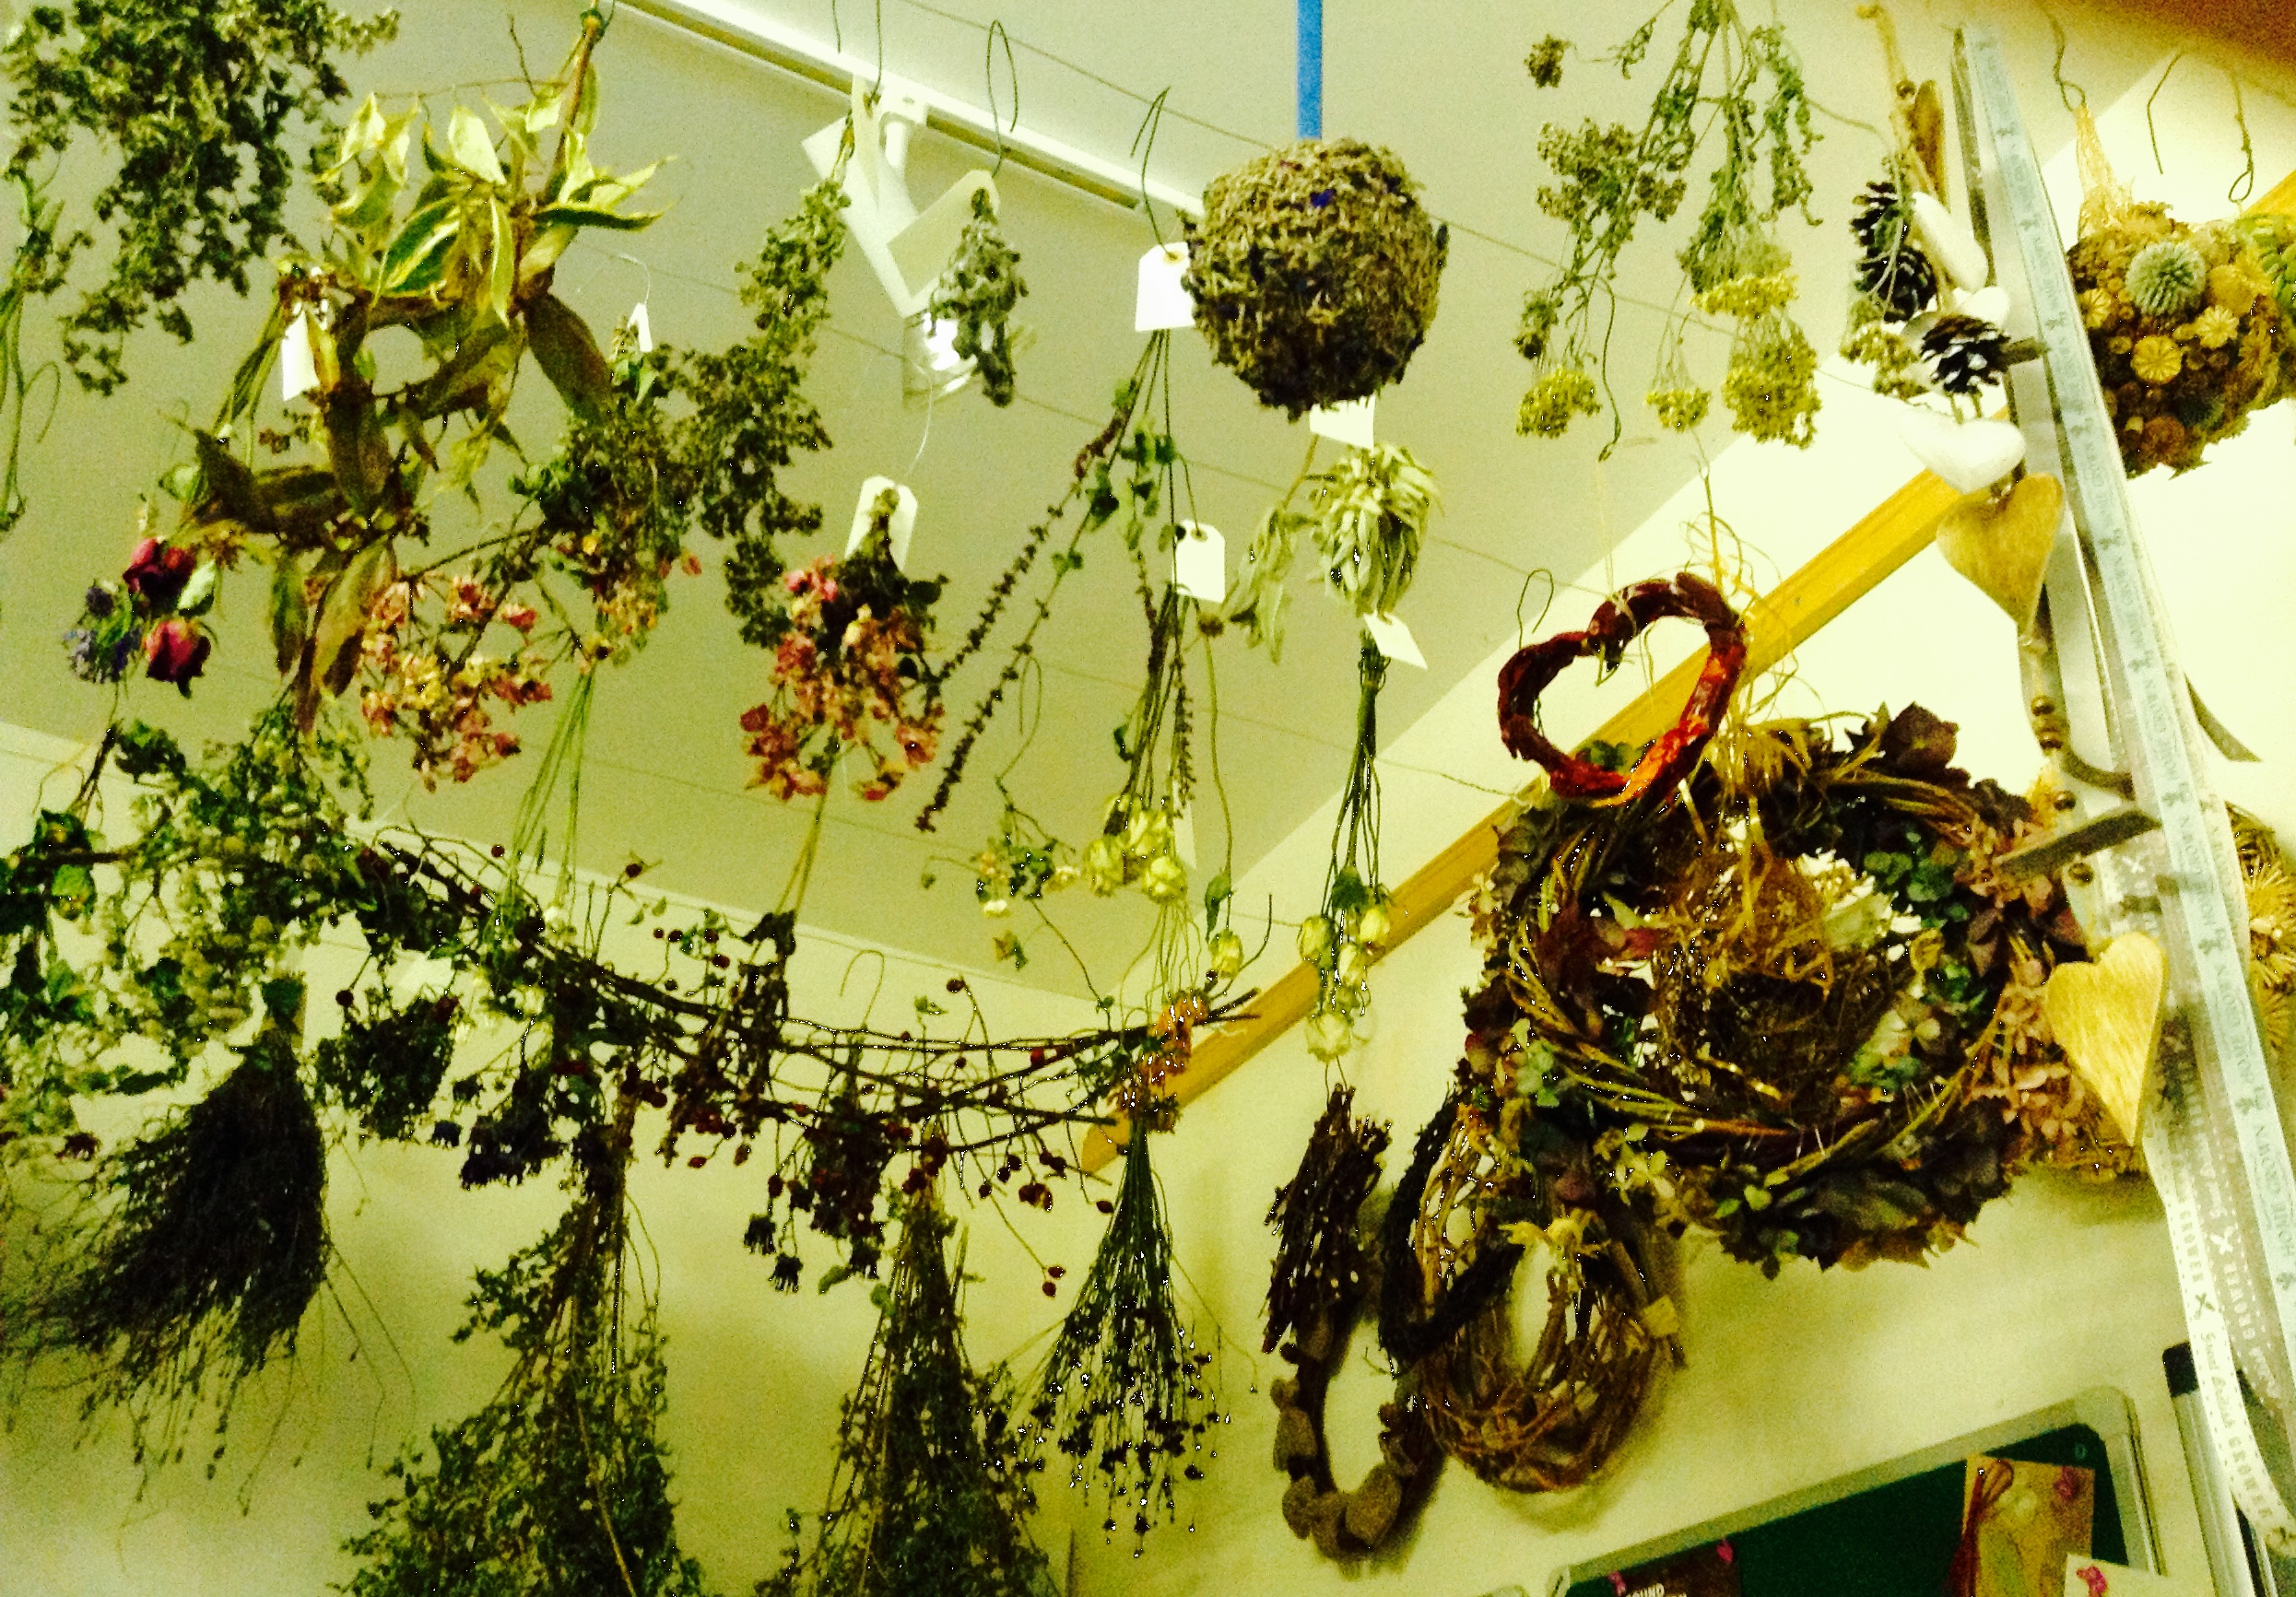 flowers drying1 dec14